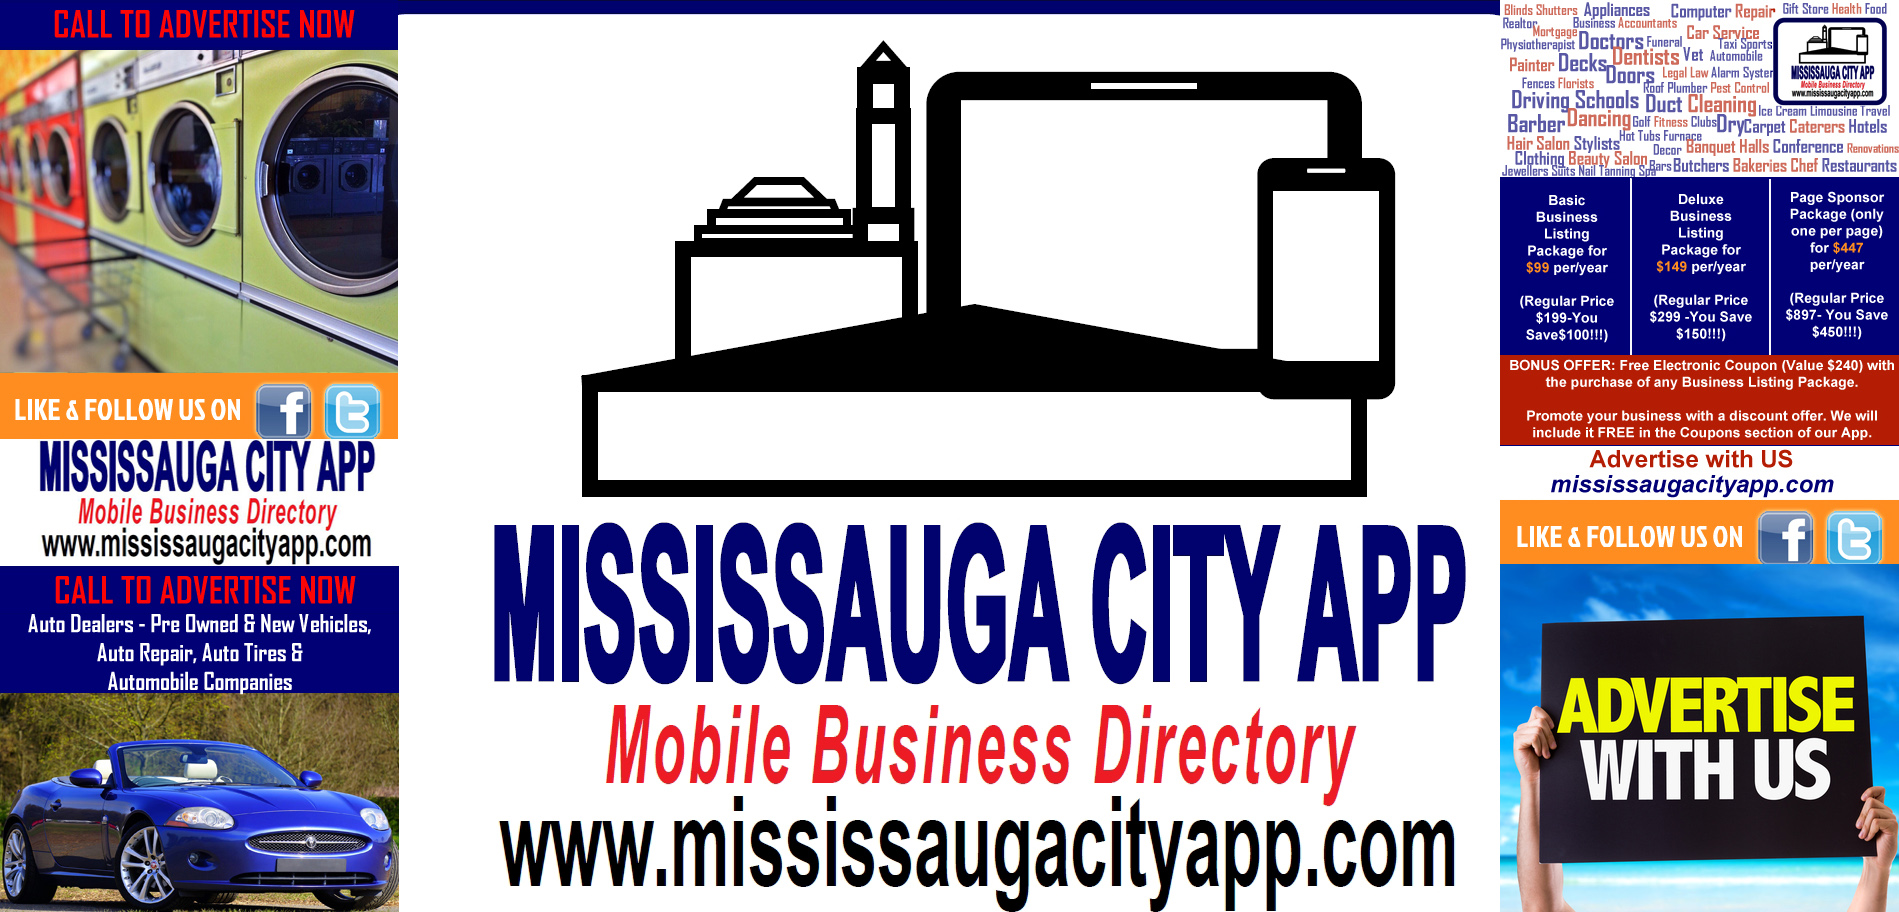 mississaugacityapp-businessdirectory-thewebmiracle